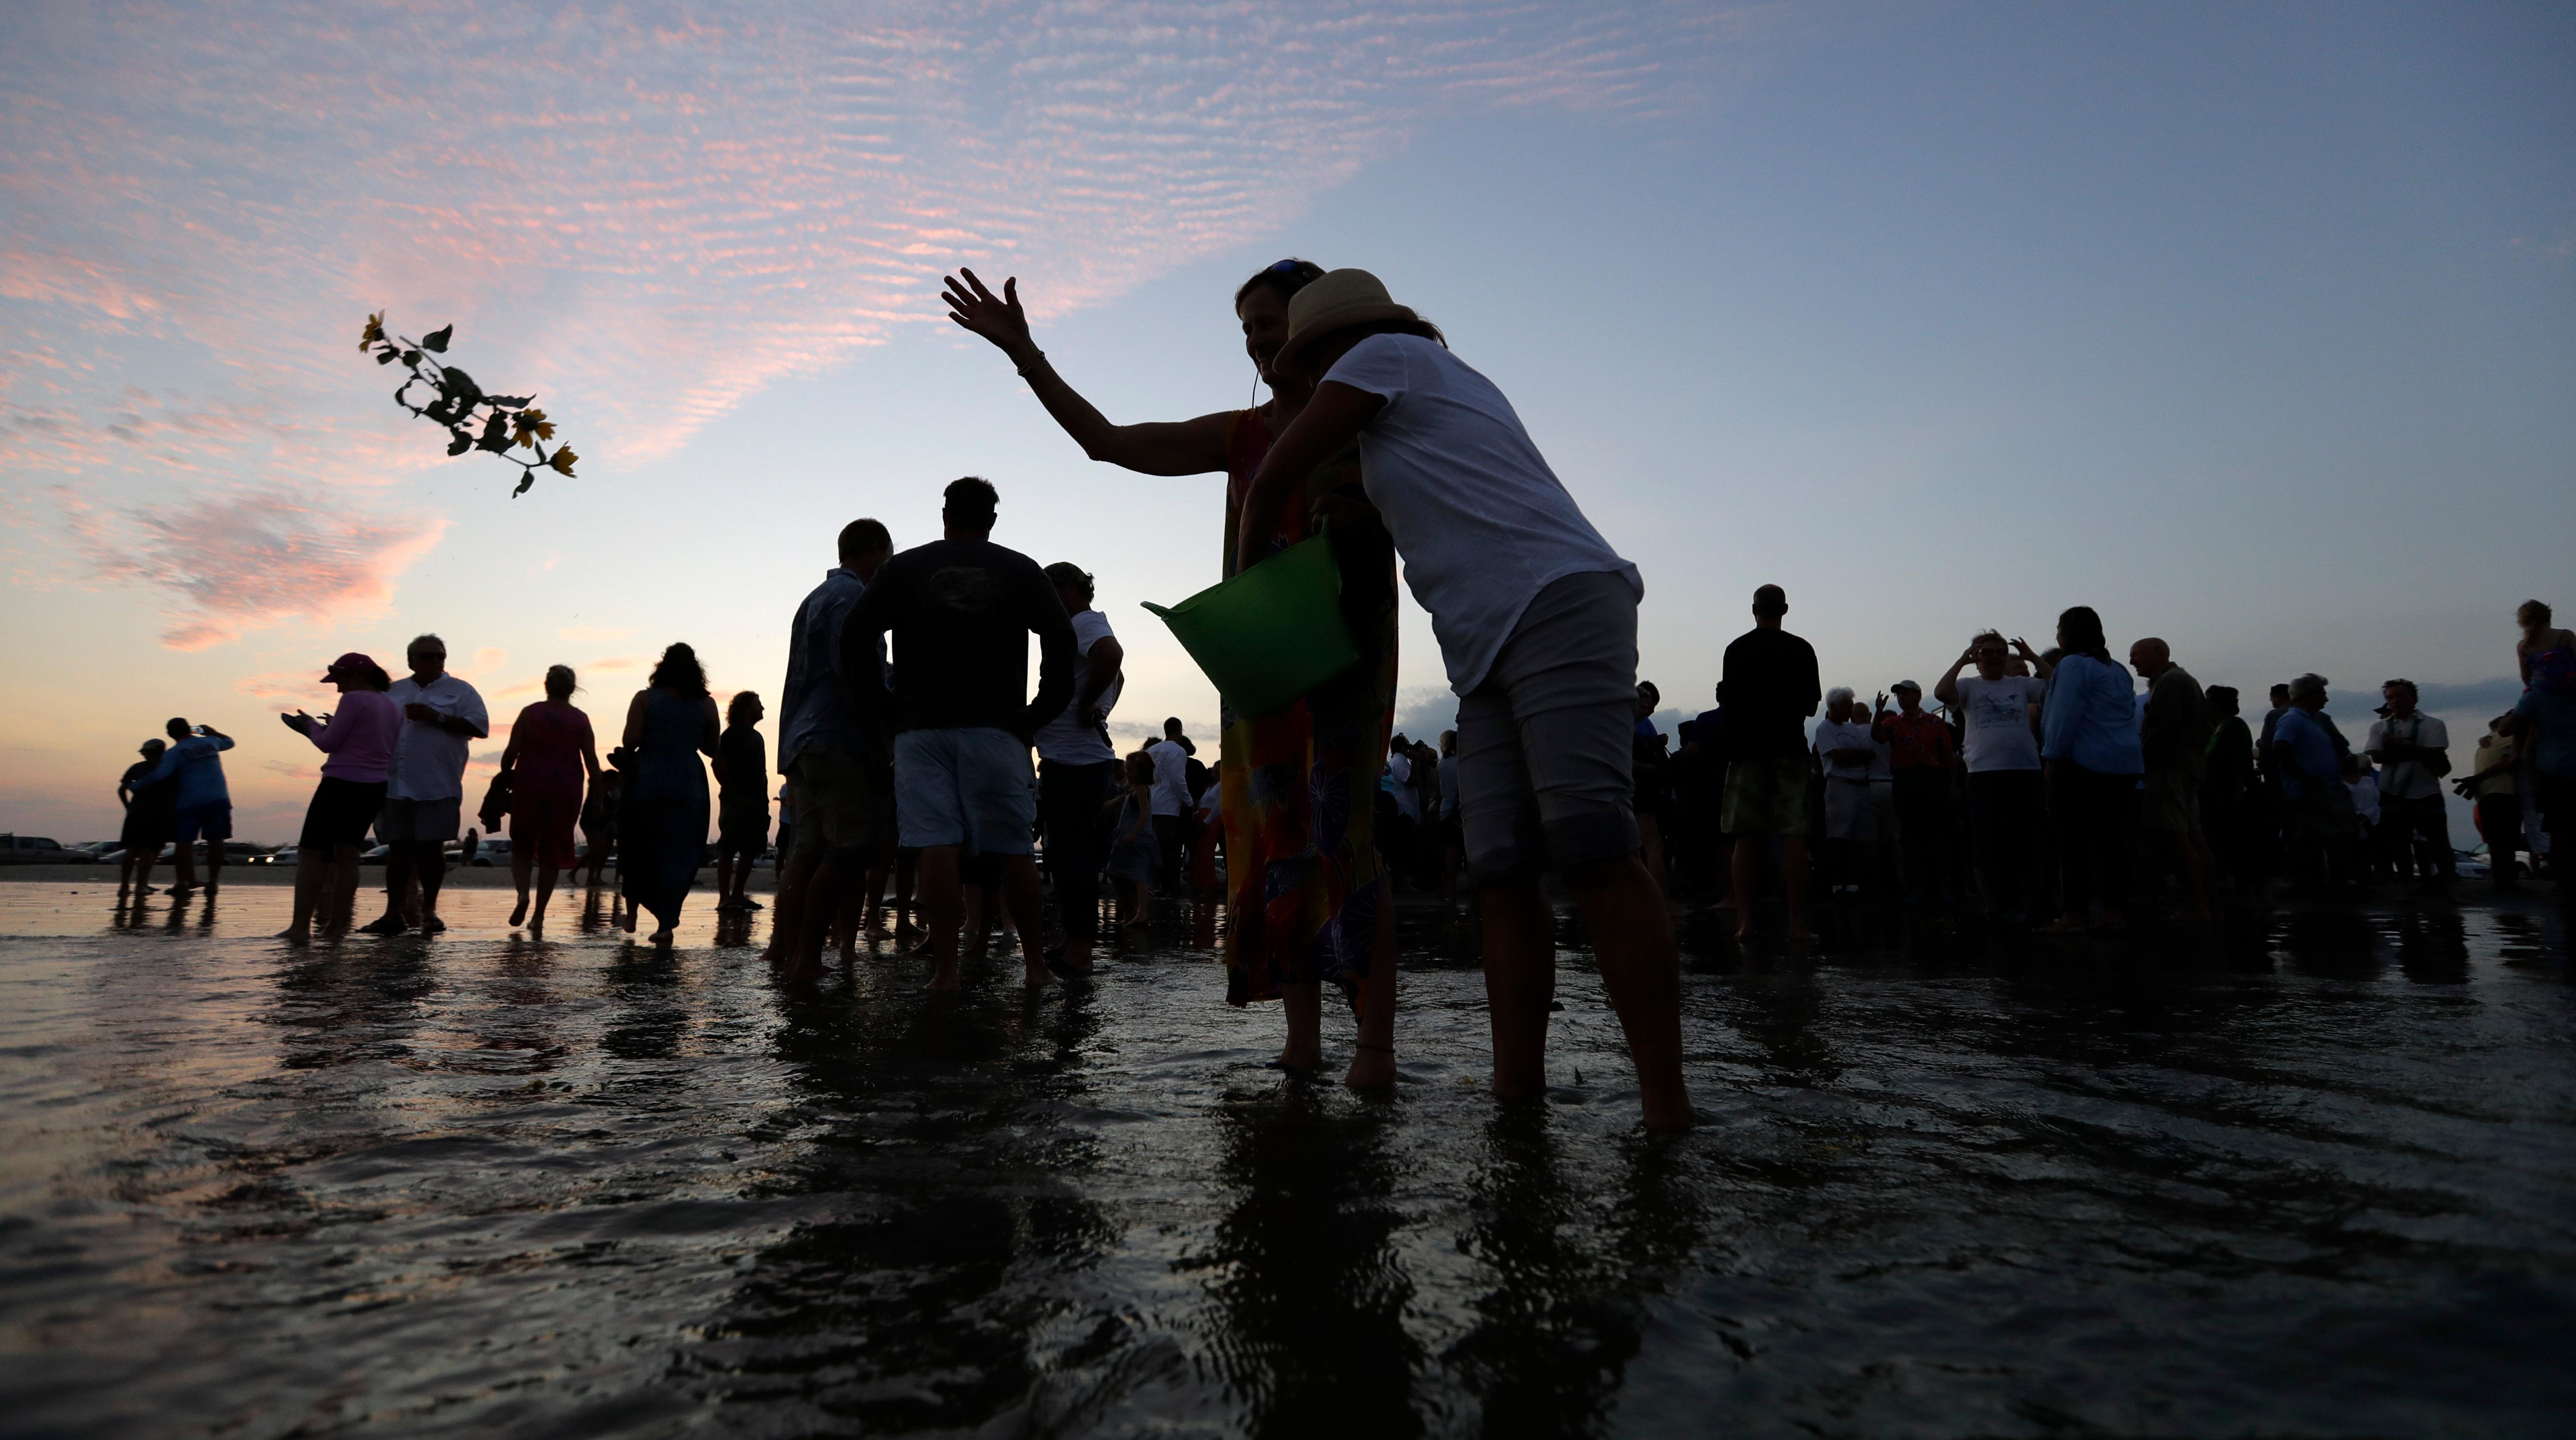 Flowers are tossed in to ocean after a sea turtle with along with the ashes of renowned oceanographer Tony Amos were released into the Gulf of Mexico following a memorial service, Saturday, Sept. 30, 2017, in Port Aransas, Texas. Amos, 80, died of complications from prostate cancer on Sept. 4, mere days after Harvey roared ashore as a fearsome hurricane.  (AP Photo/Eric Gay)